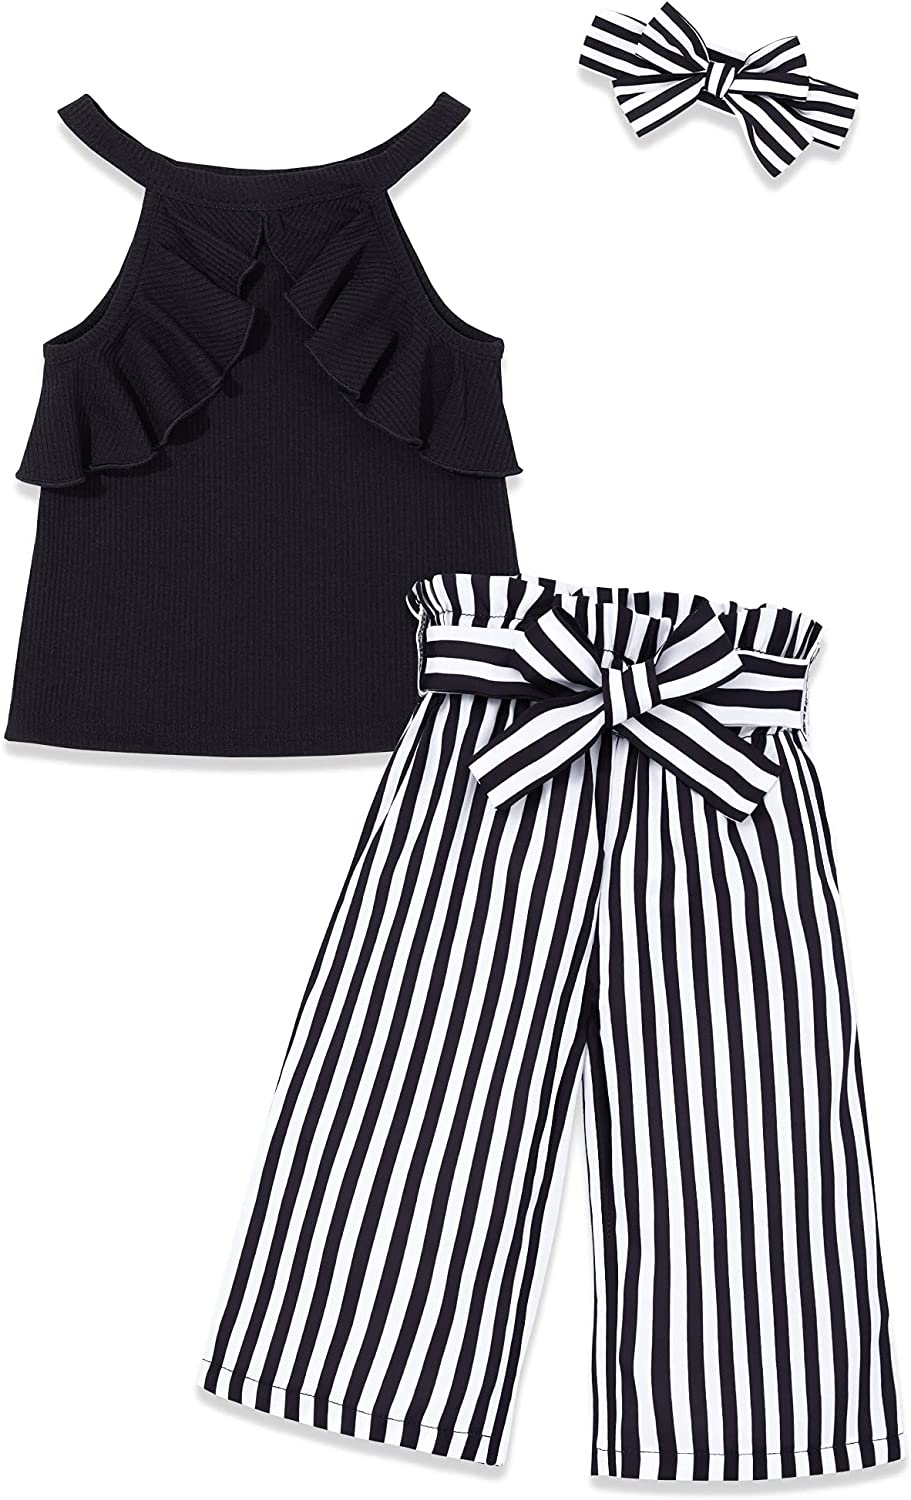 Toddler Girl Clothes Summer Outfits, Baby Girl Clothes Sets with Short Sleeve T-Shirt Top + Baby Bell Bottoms Pants 2Pcs Set